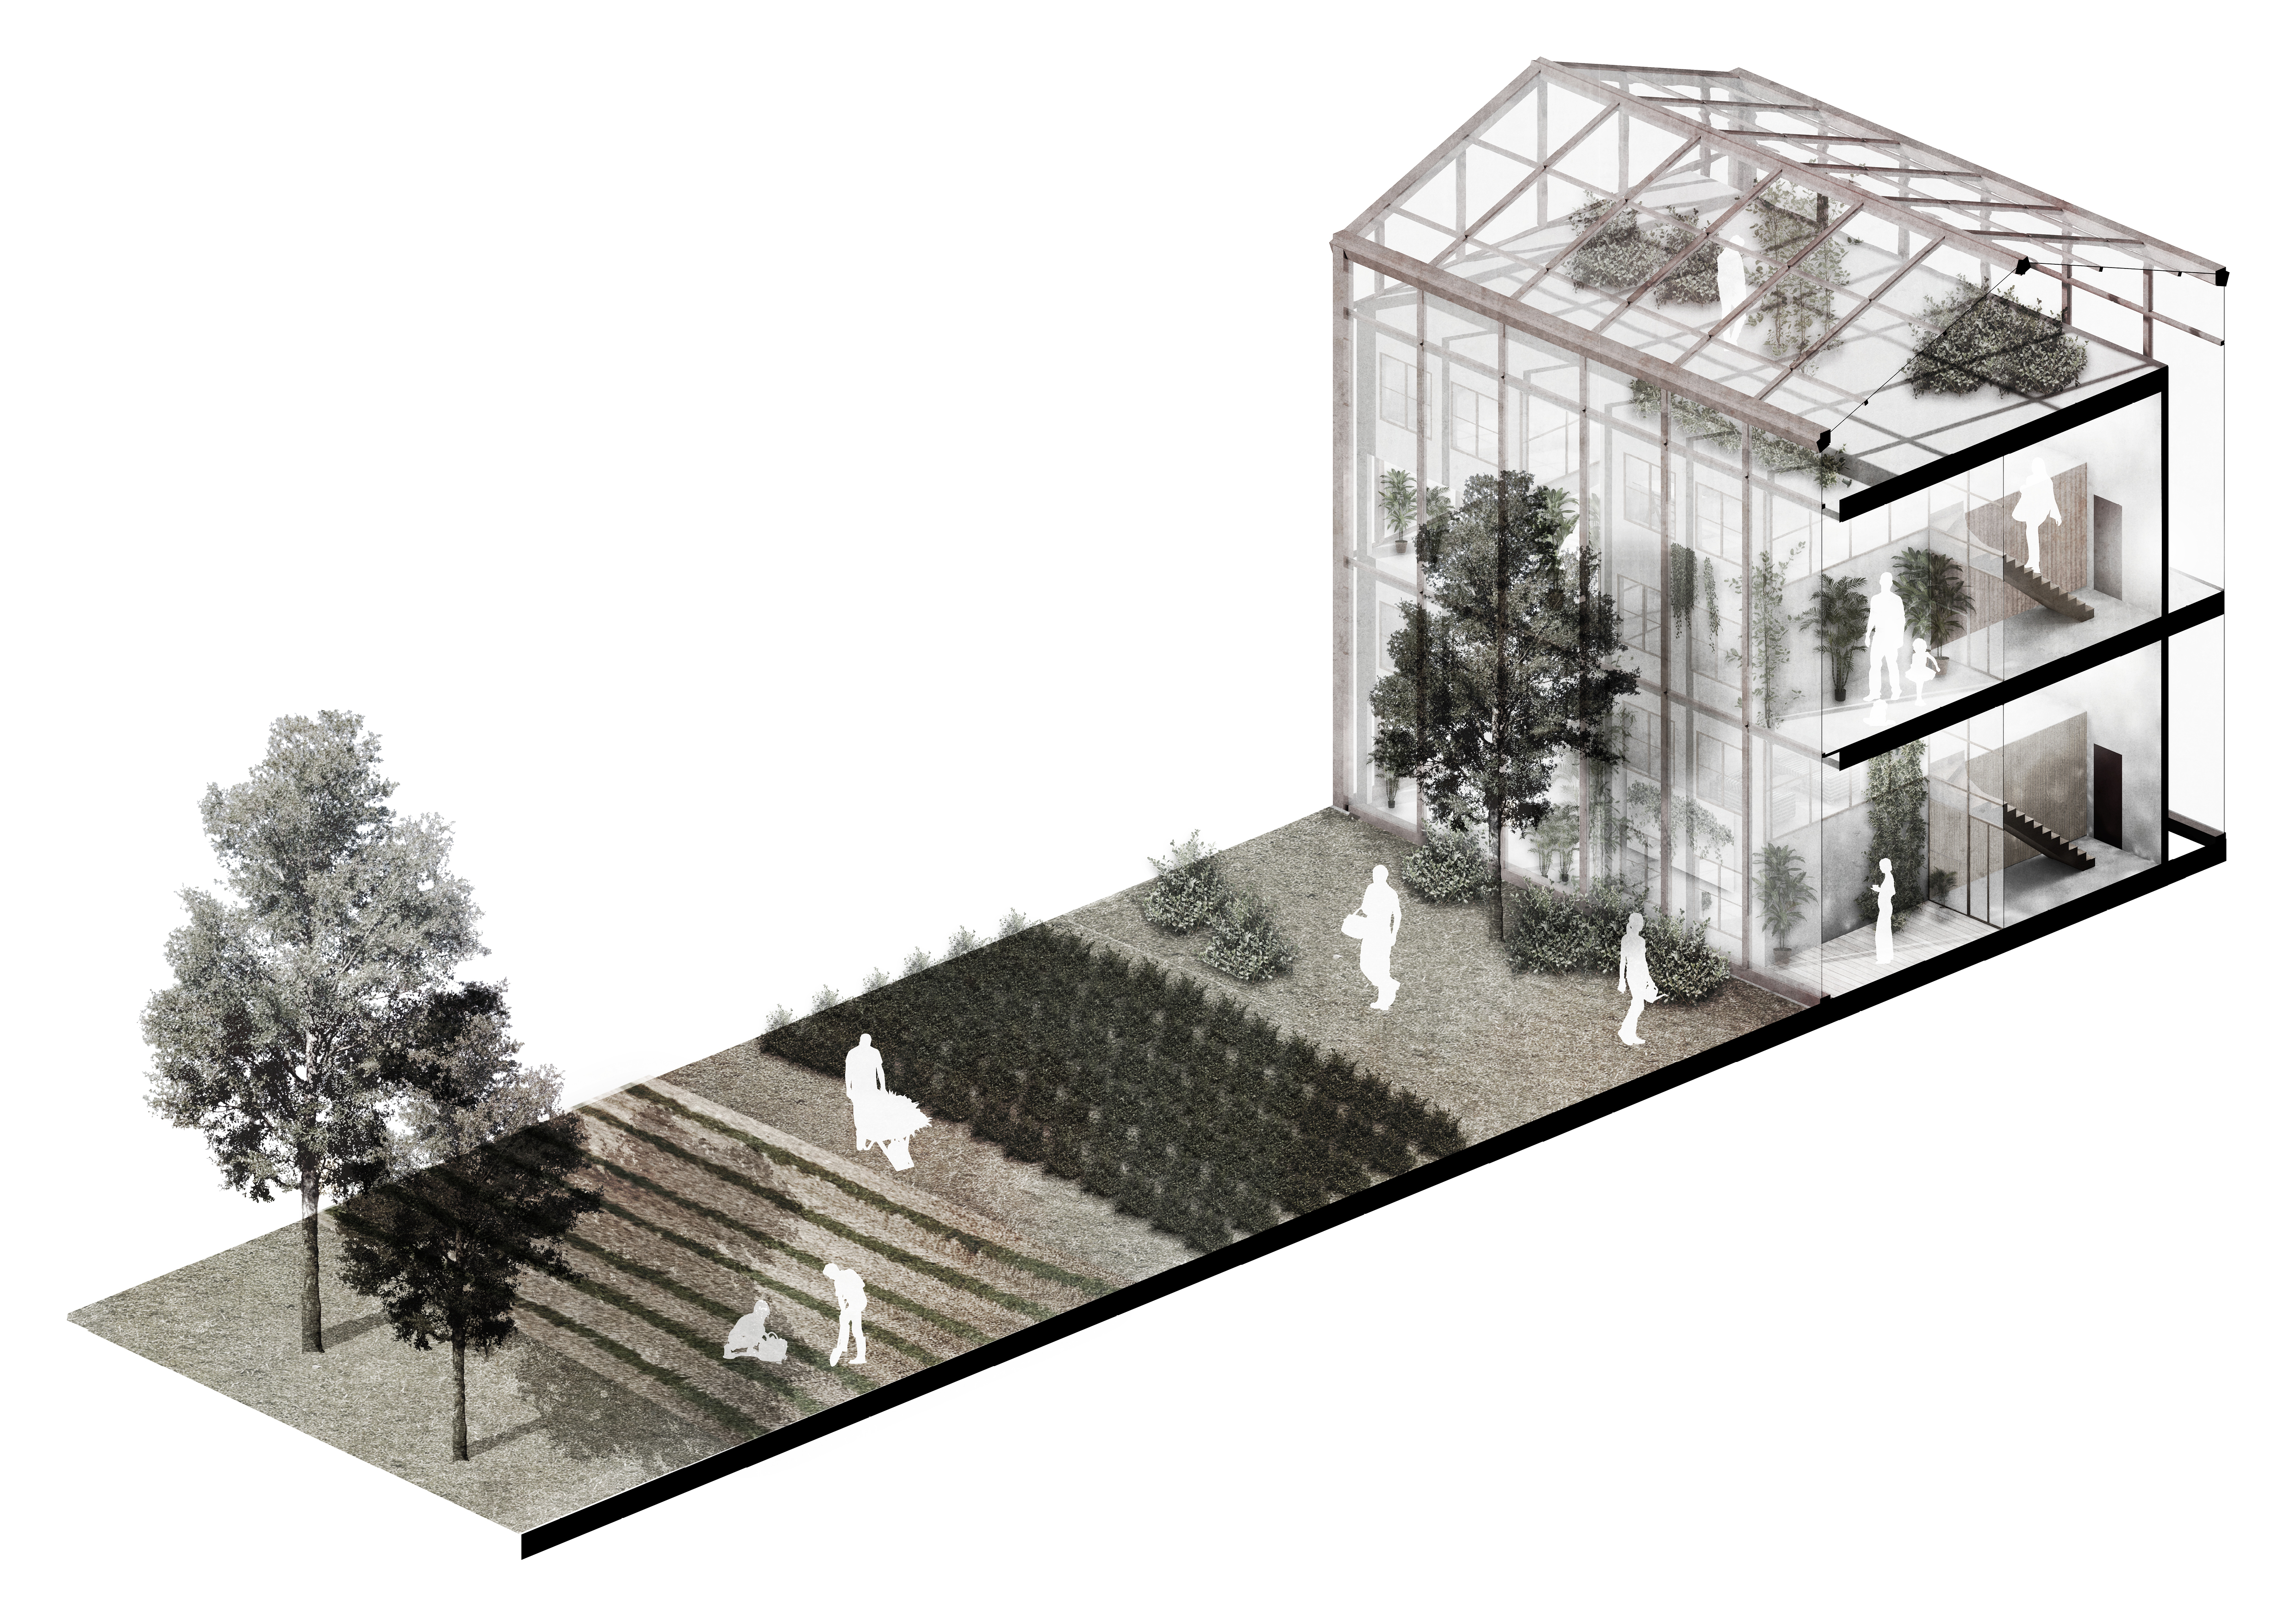 Sectional axonometric of a typical dwelling building